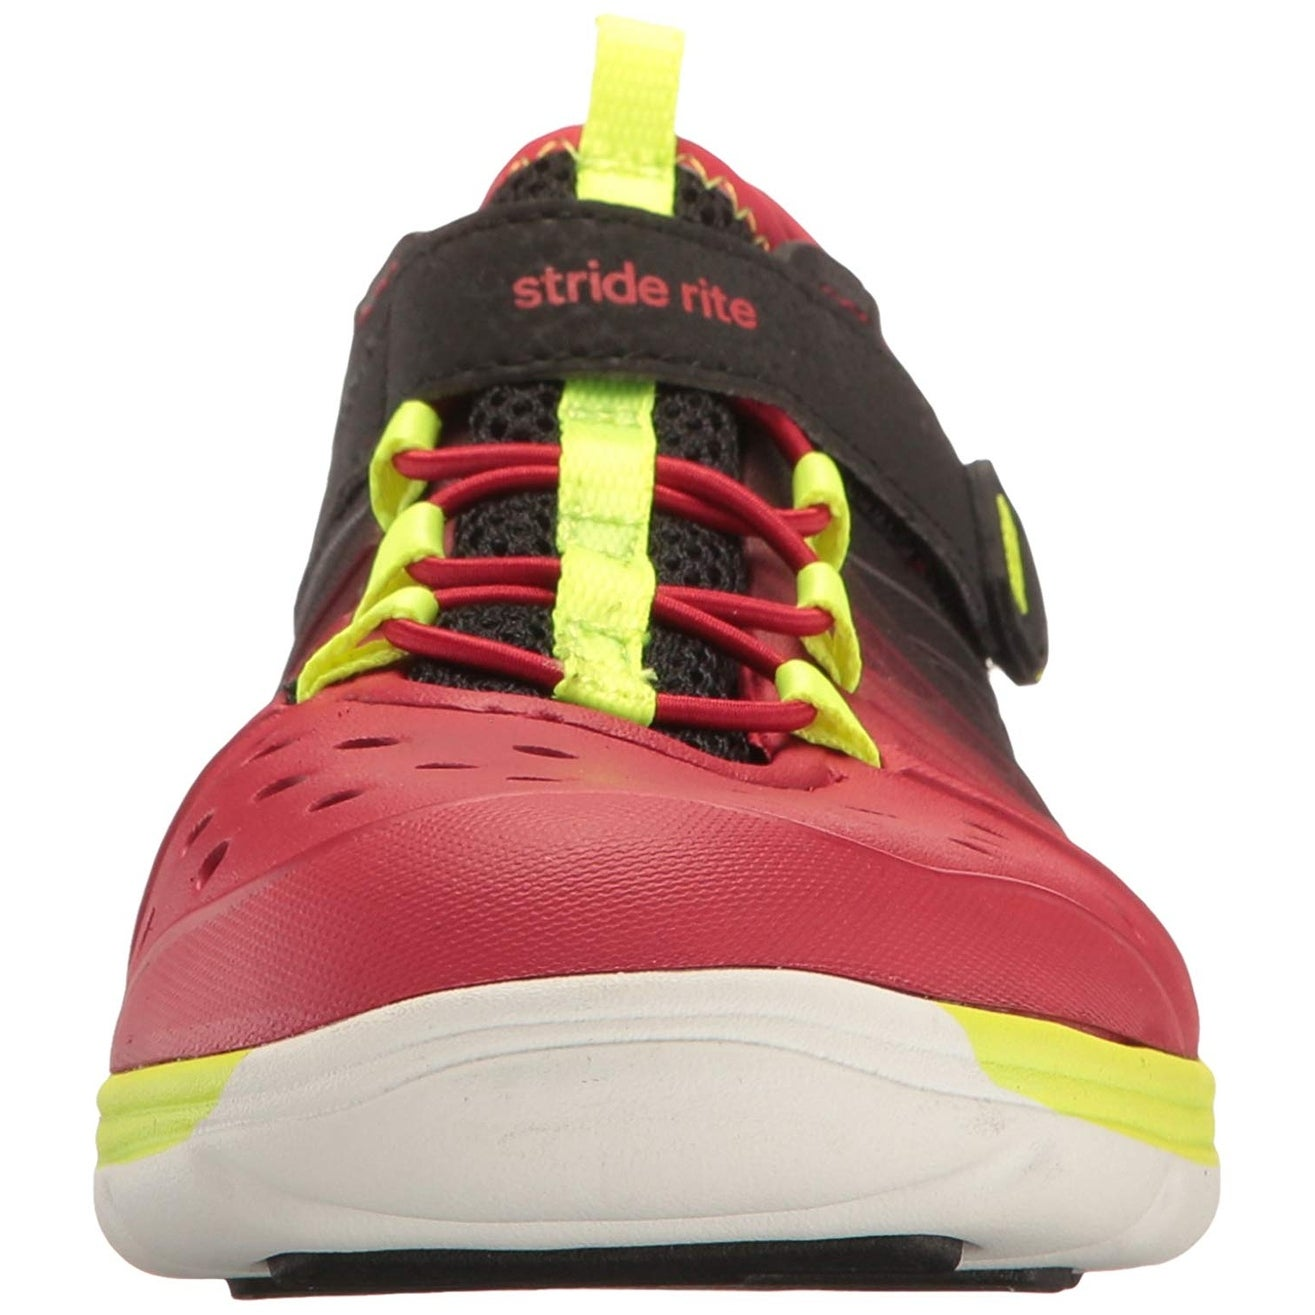 ed3d723cd64d Shop Kids Stride Rite Girls Phibian Rubber Low Top Water Shoes - Free  Shipping On Orders Over  45 - Overstock - 22307775